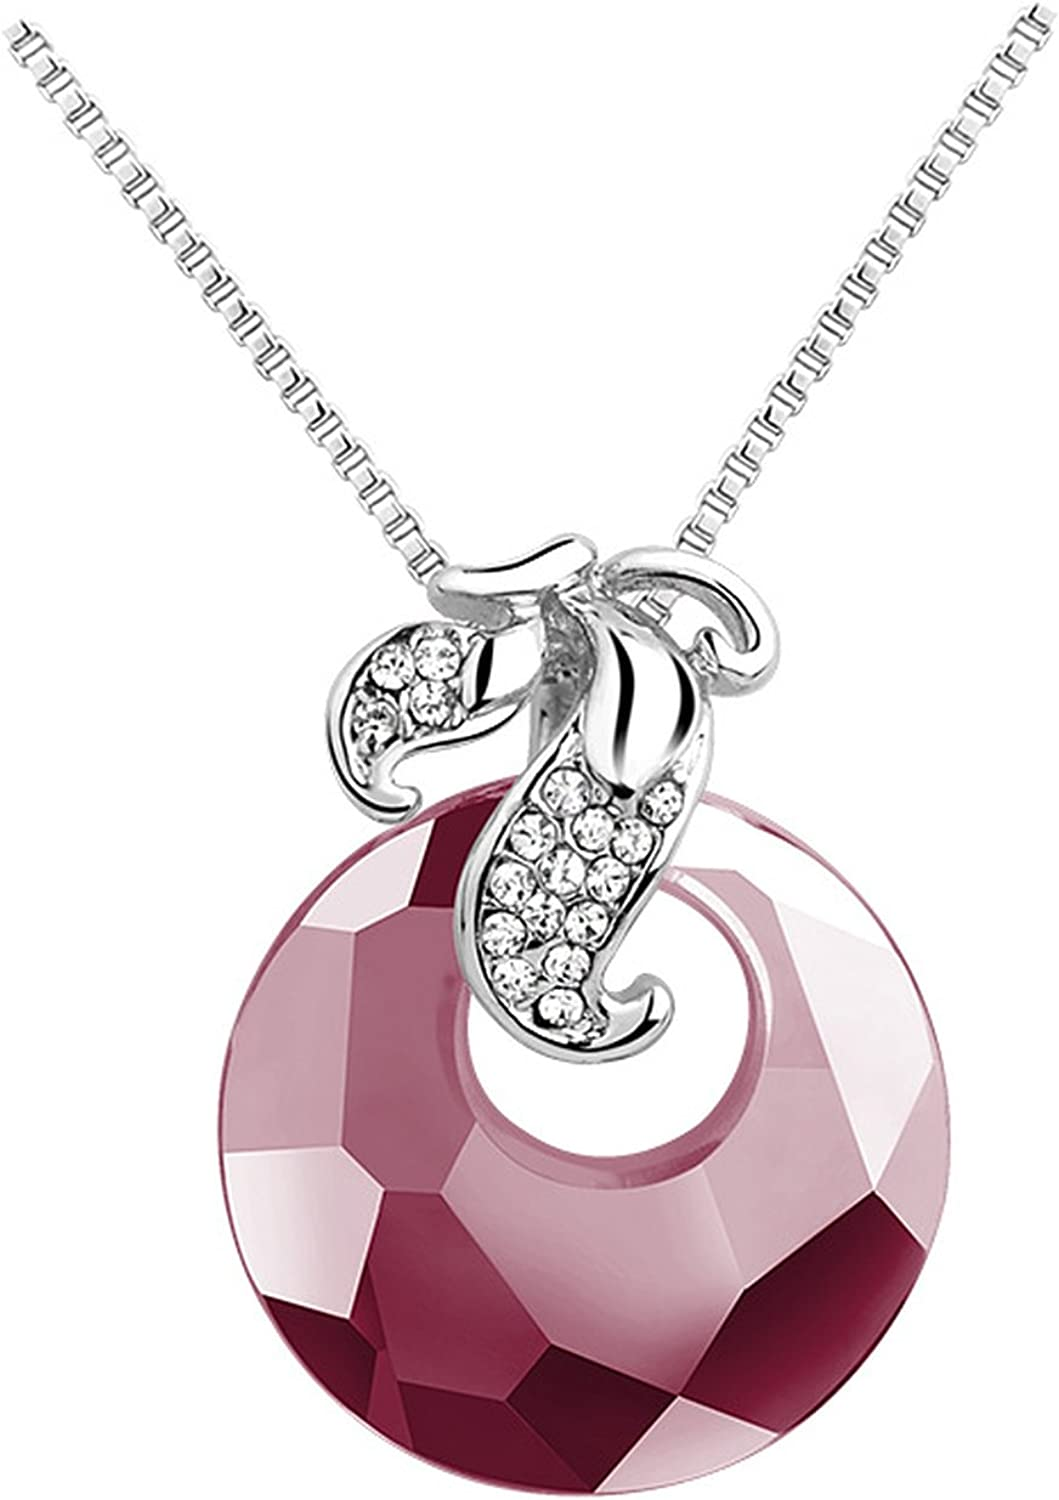 Collocation-Online 2018 New Crystal Necklace Direct Genuine high-Grade Austrian Crystal Jewelry Mixed Batch Generation